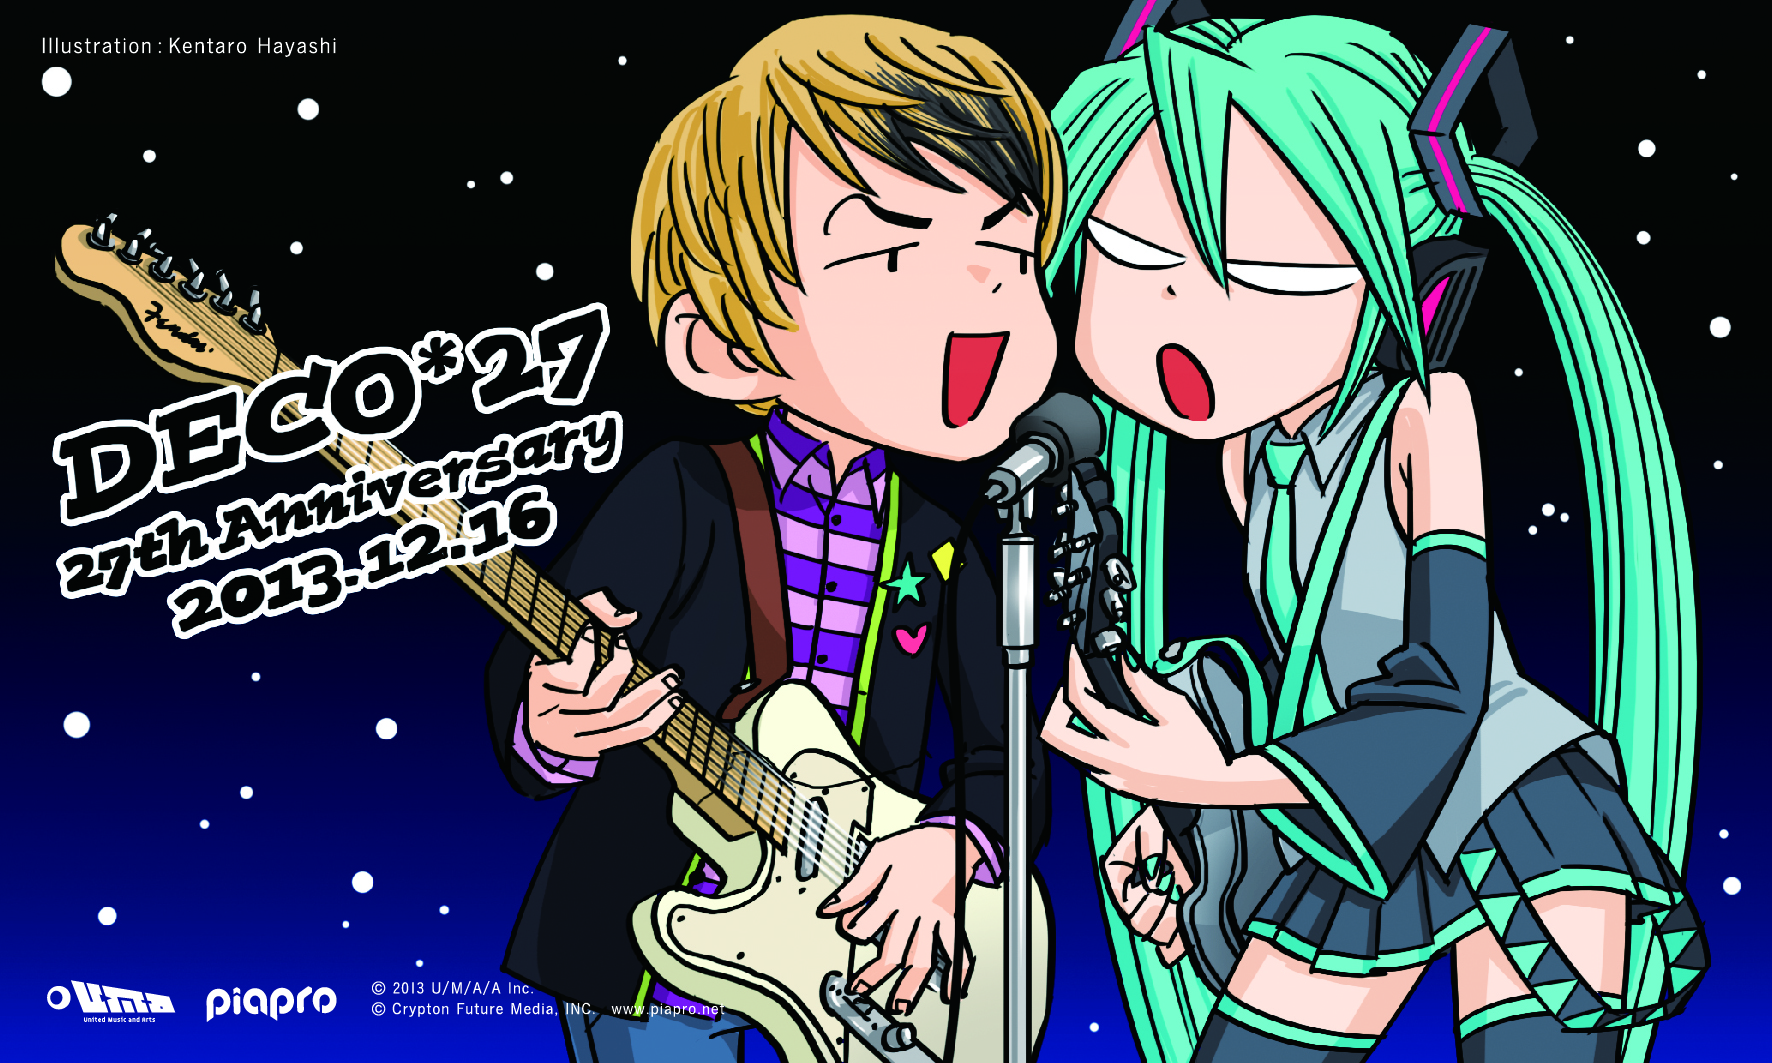 DECO*27 - DECO*27 VOCALOID COLLECTION 2008〜2012 - 画像2